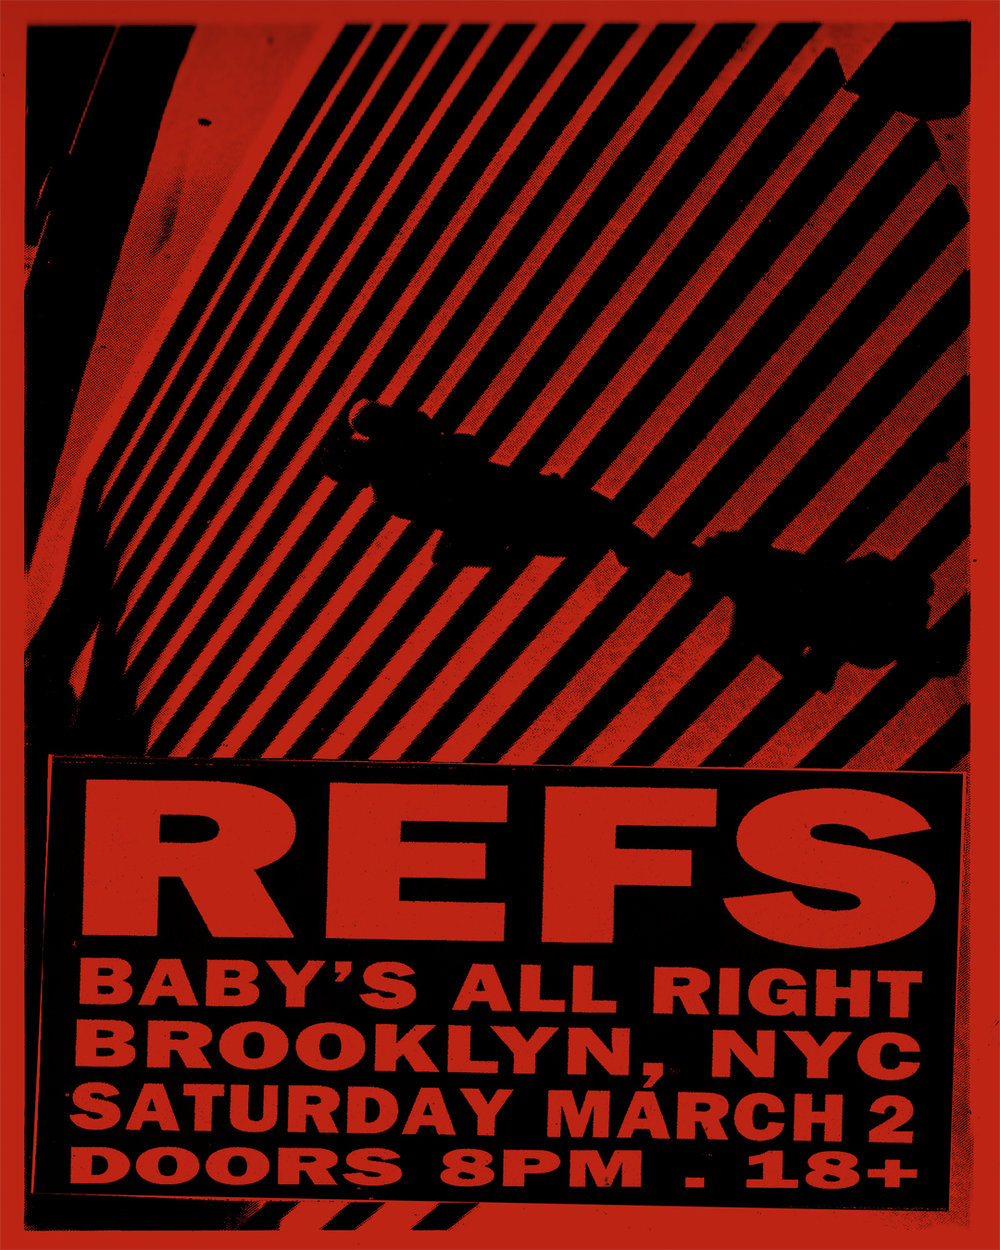 Refs Live at Baby's All Right in Brooklyn - Grab your tickets here